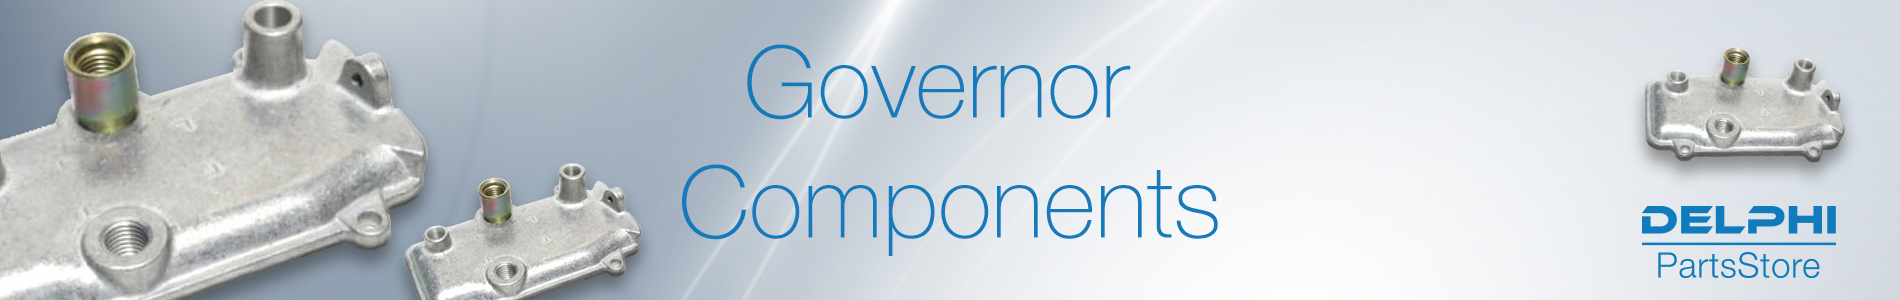 Governor Components